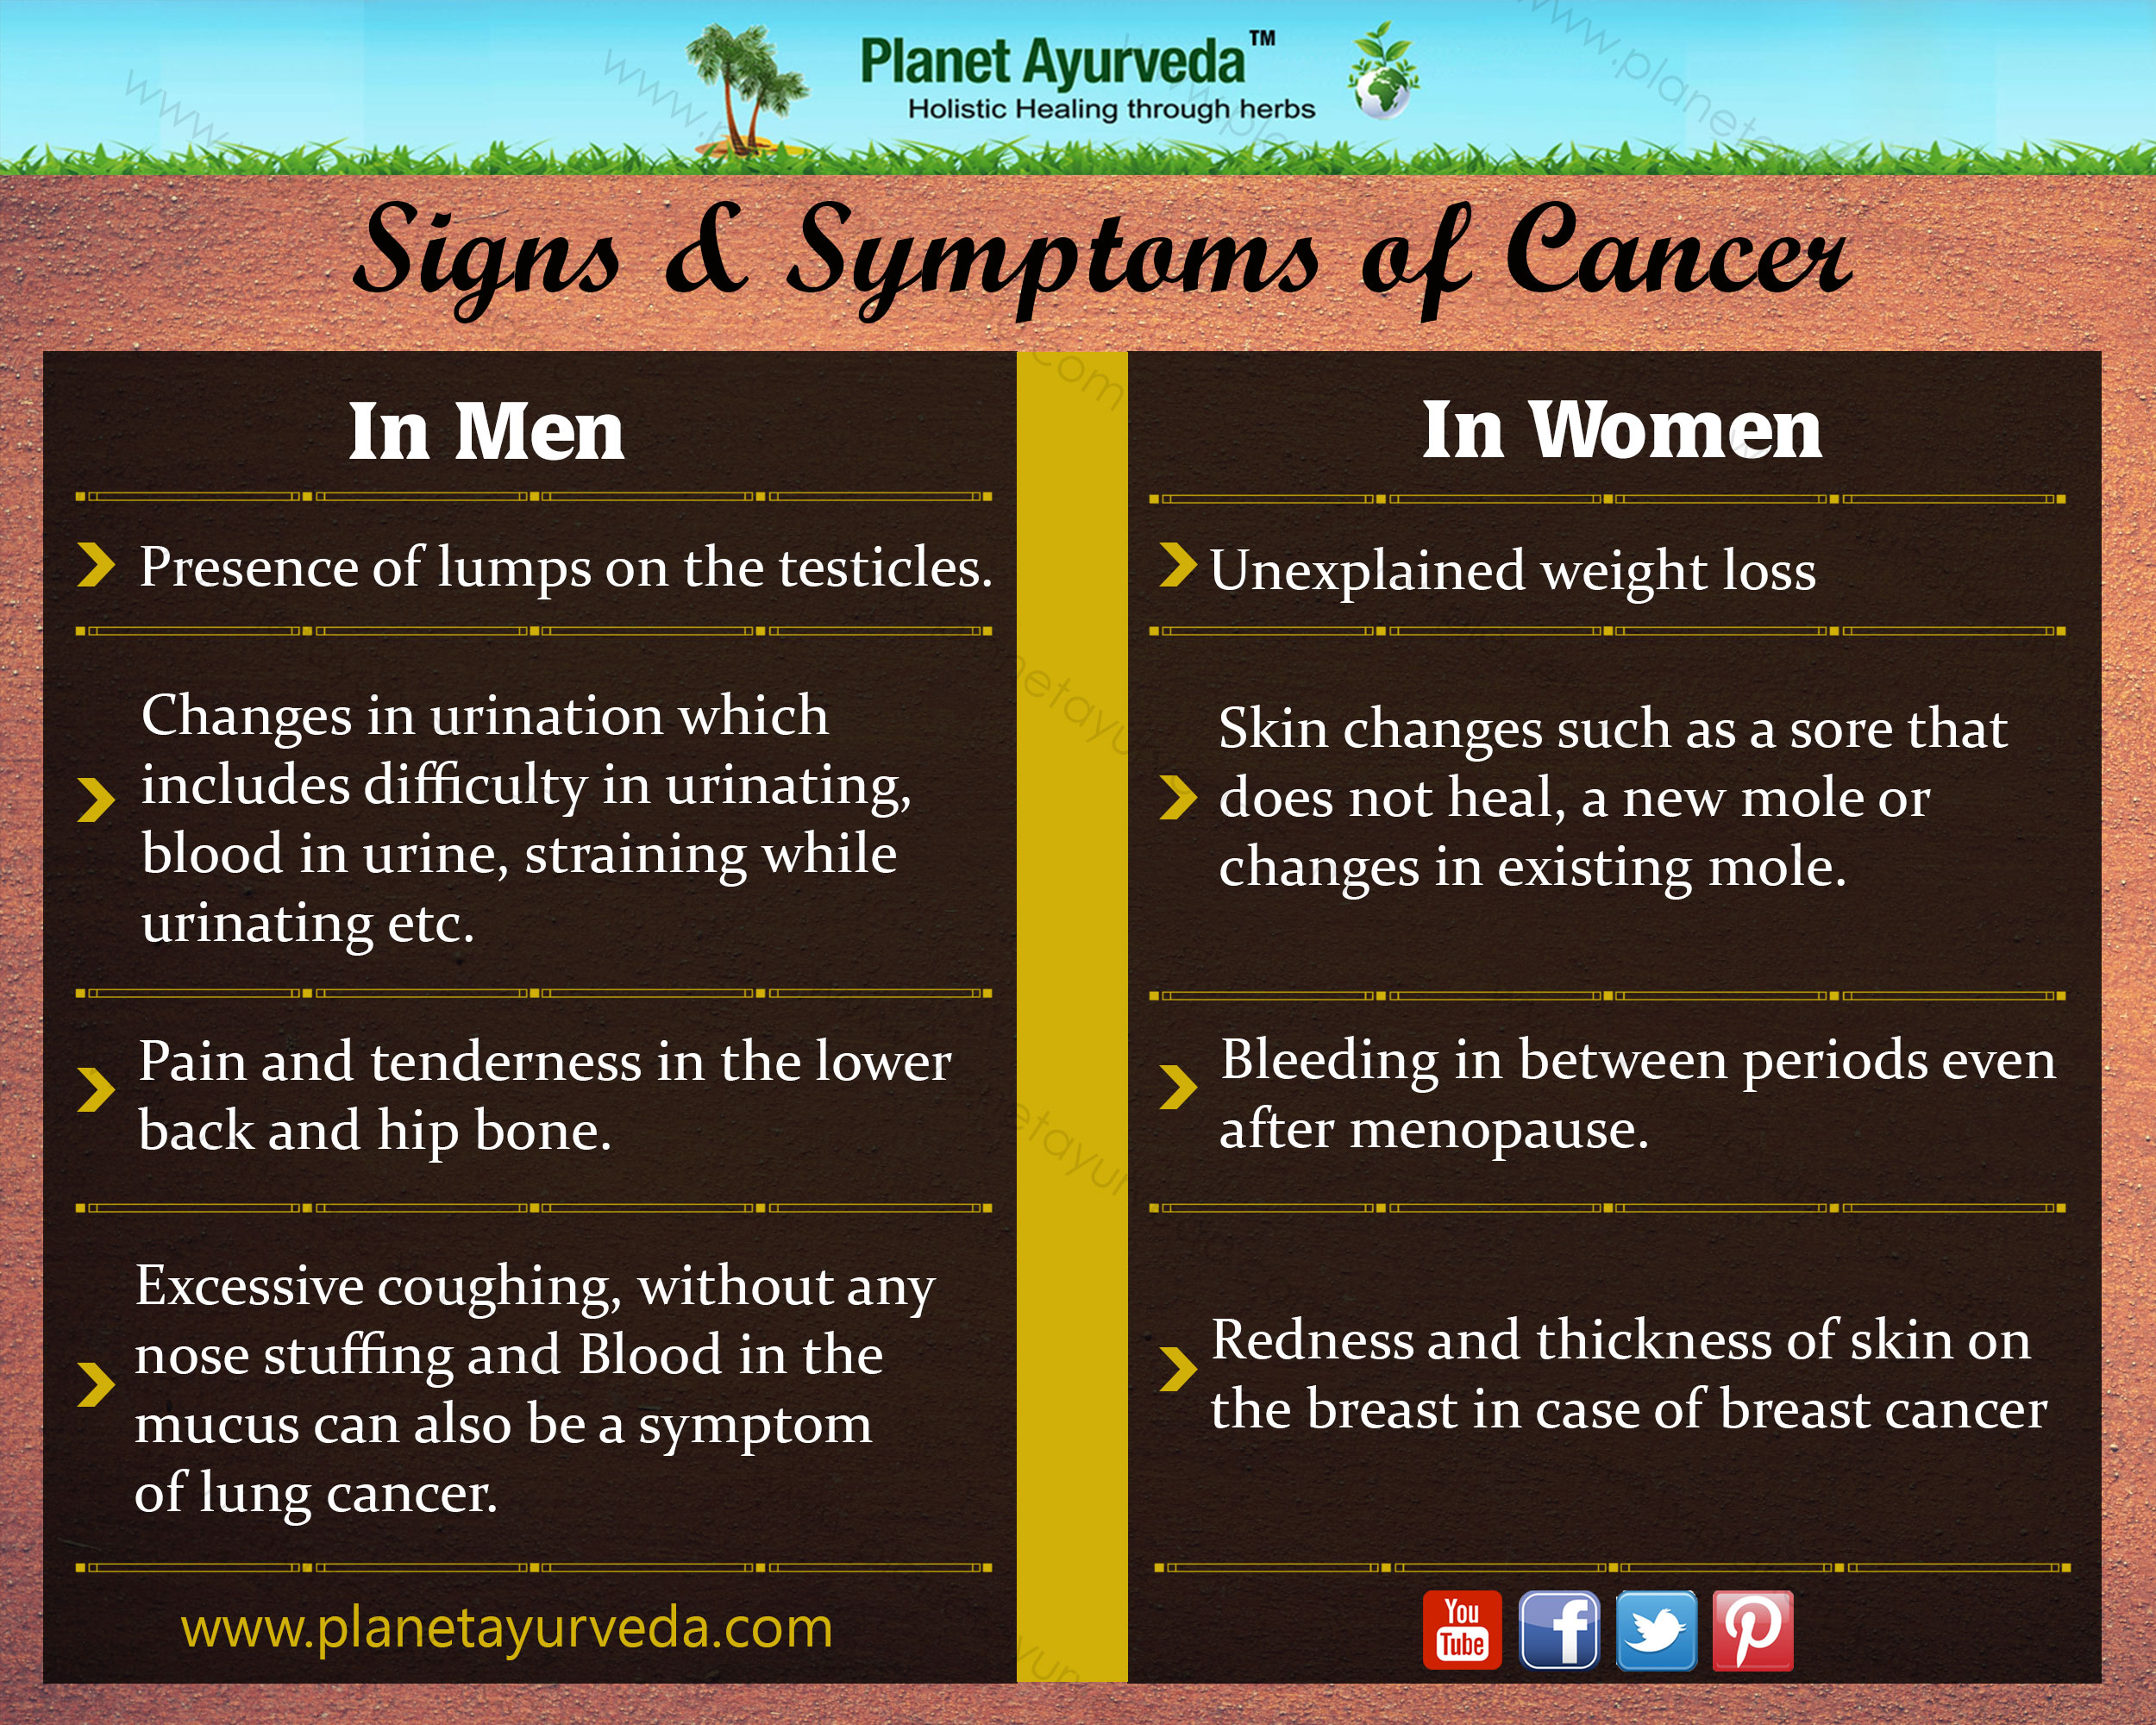 Symptoms & Signs of Cancer